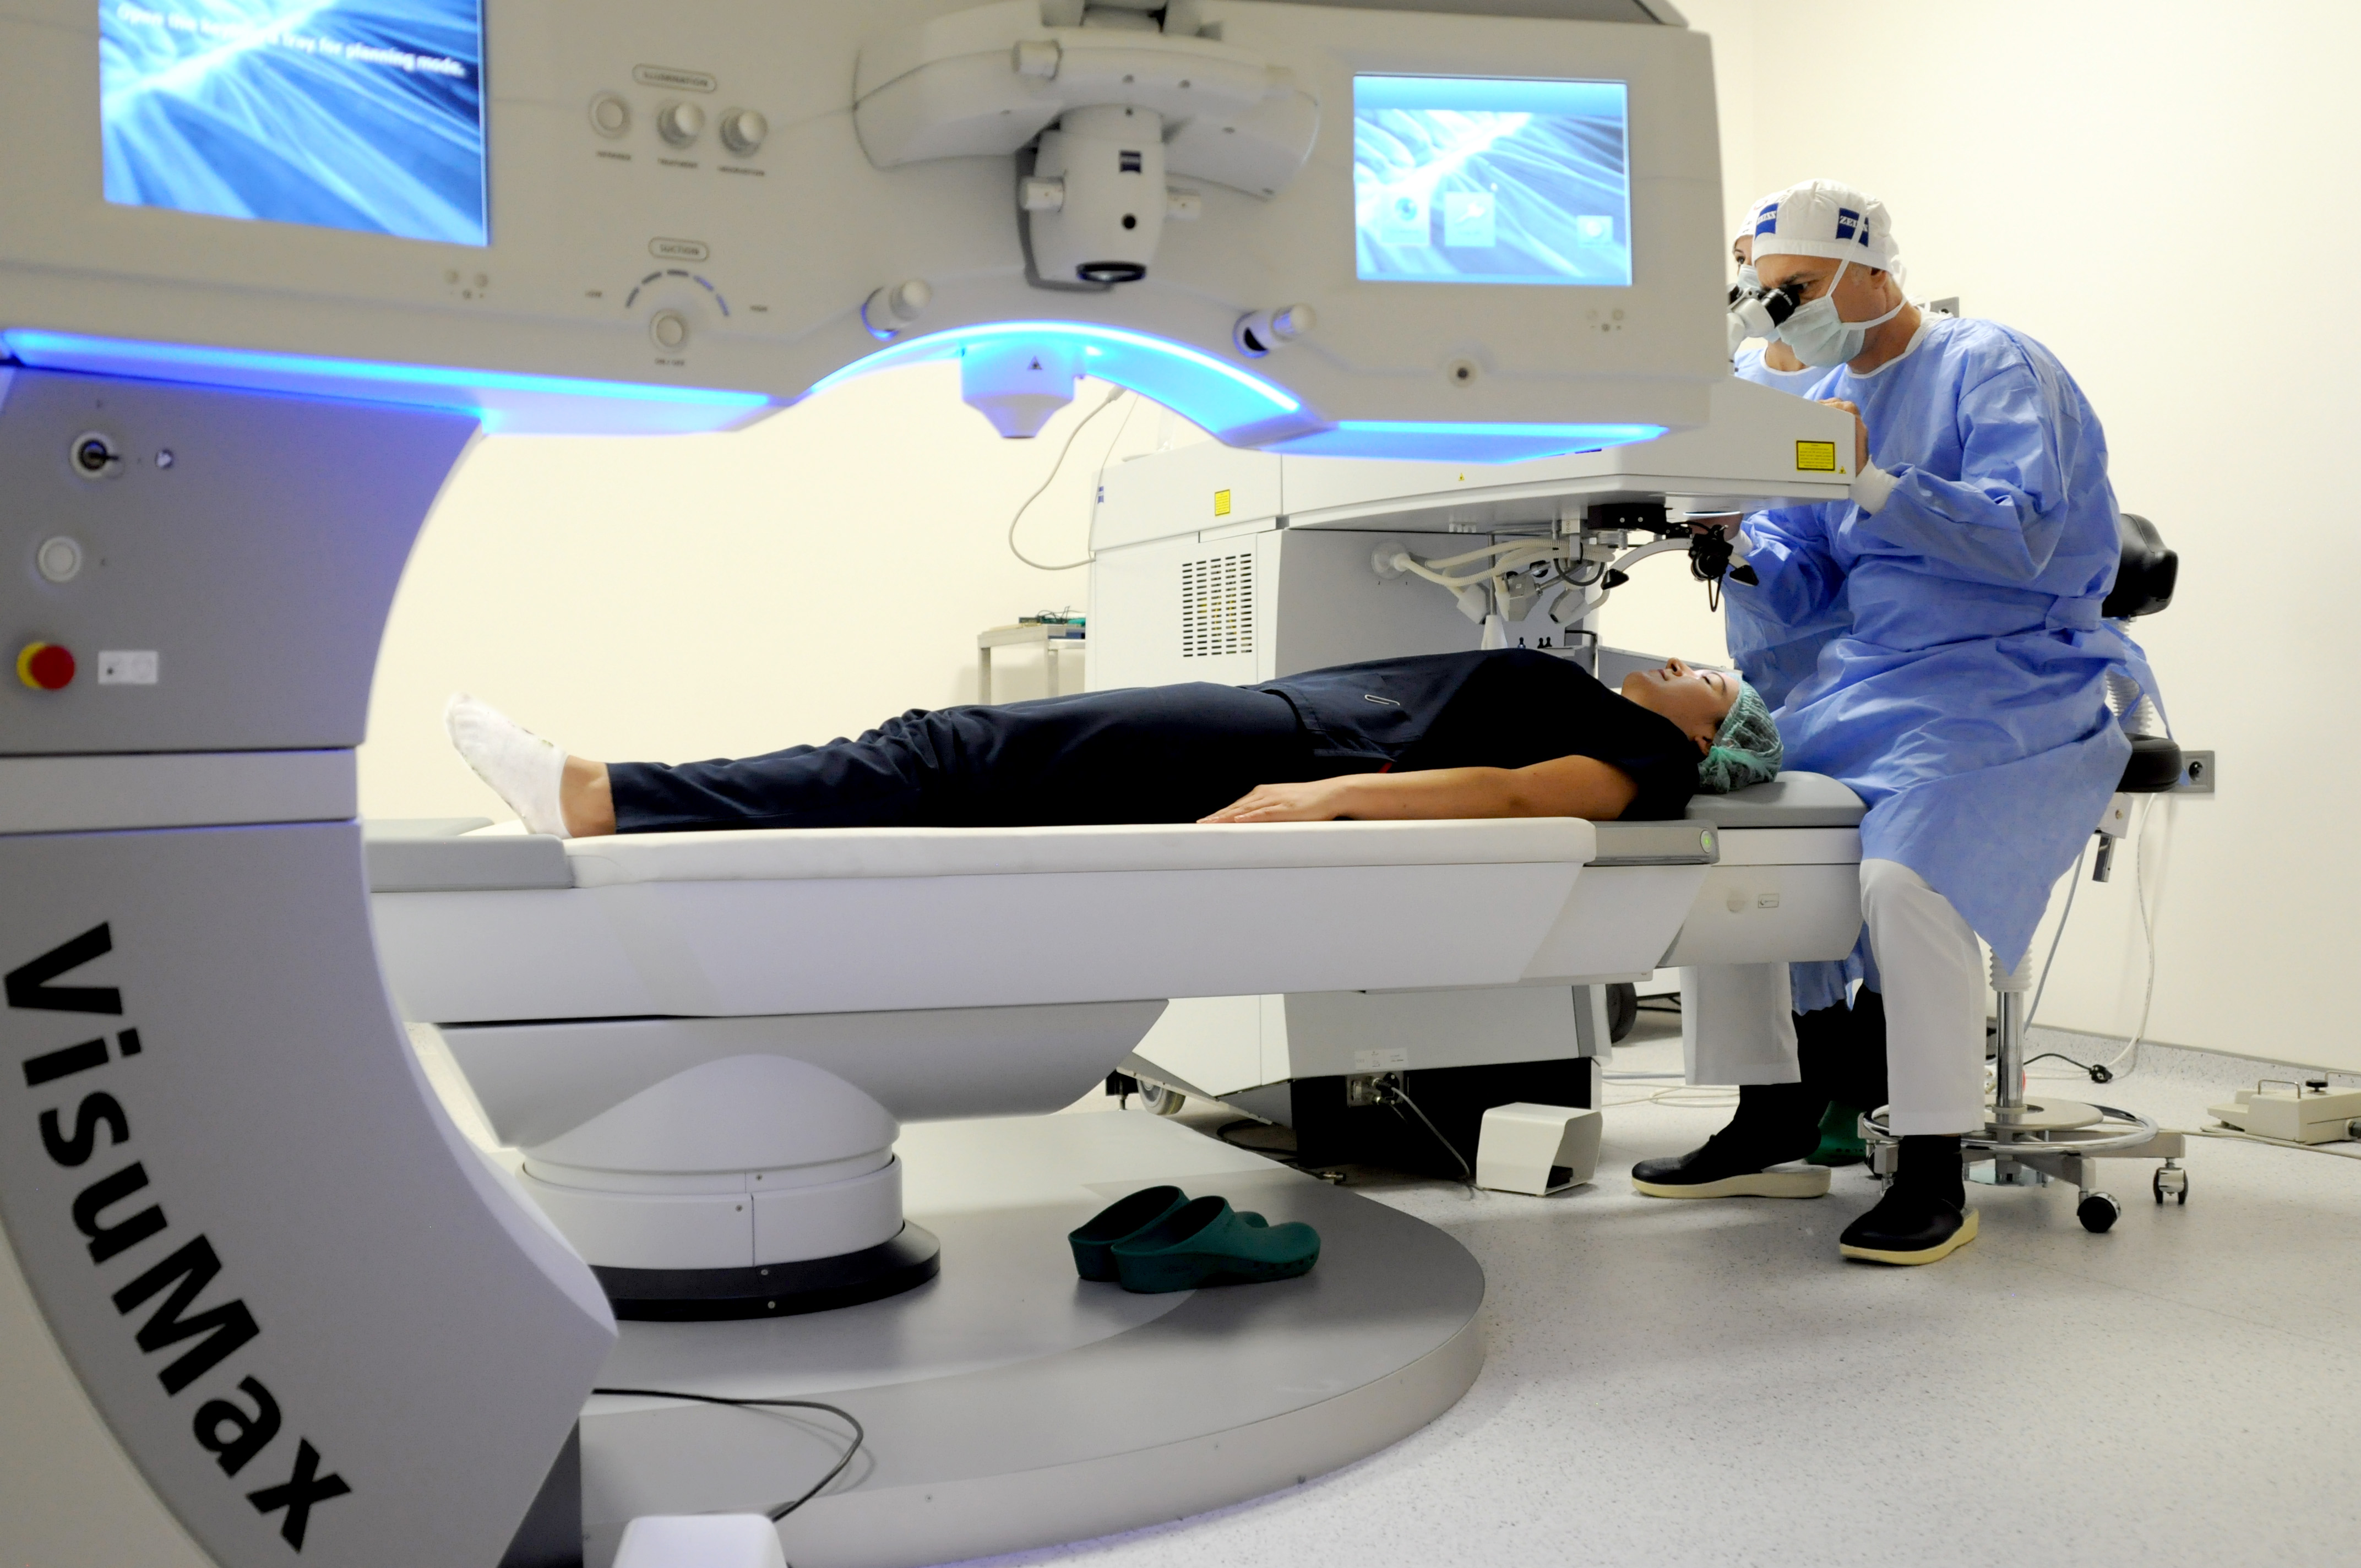 Net Göz Eye Surgery Clinic gallery - picture 3